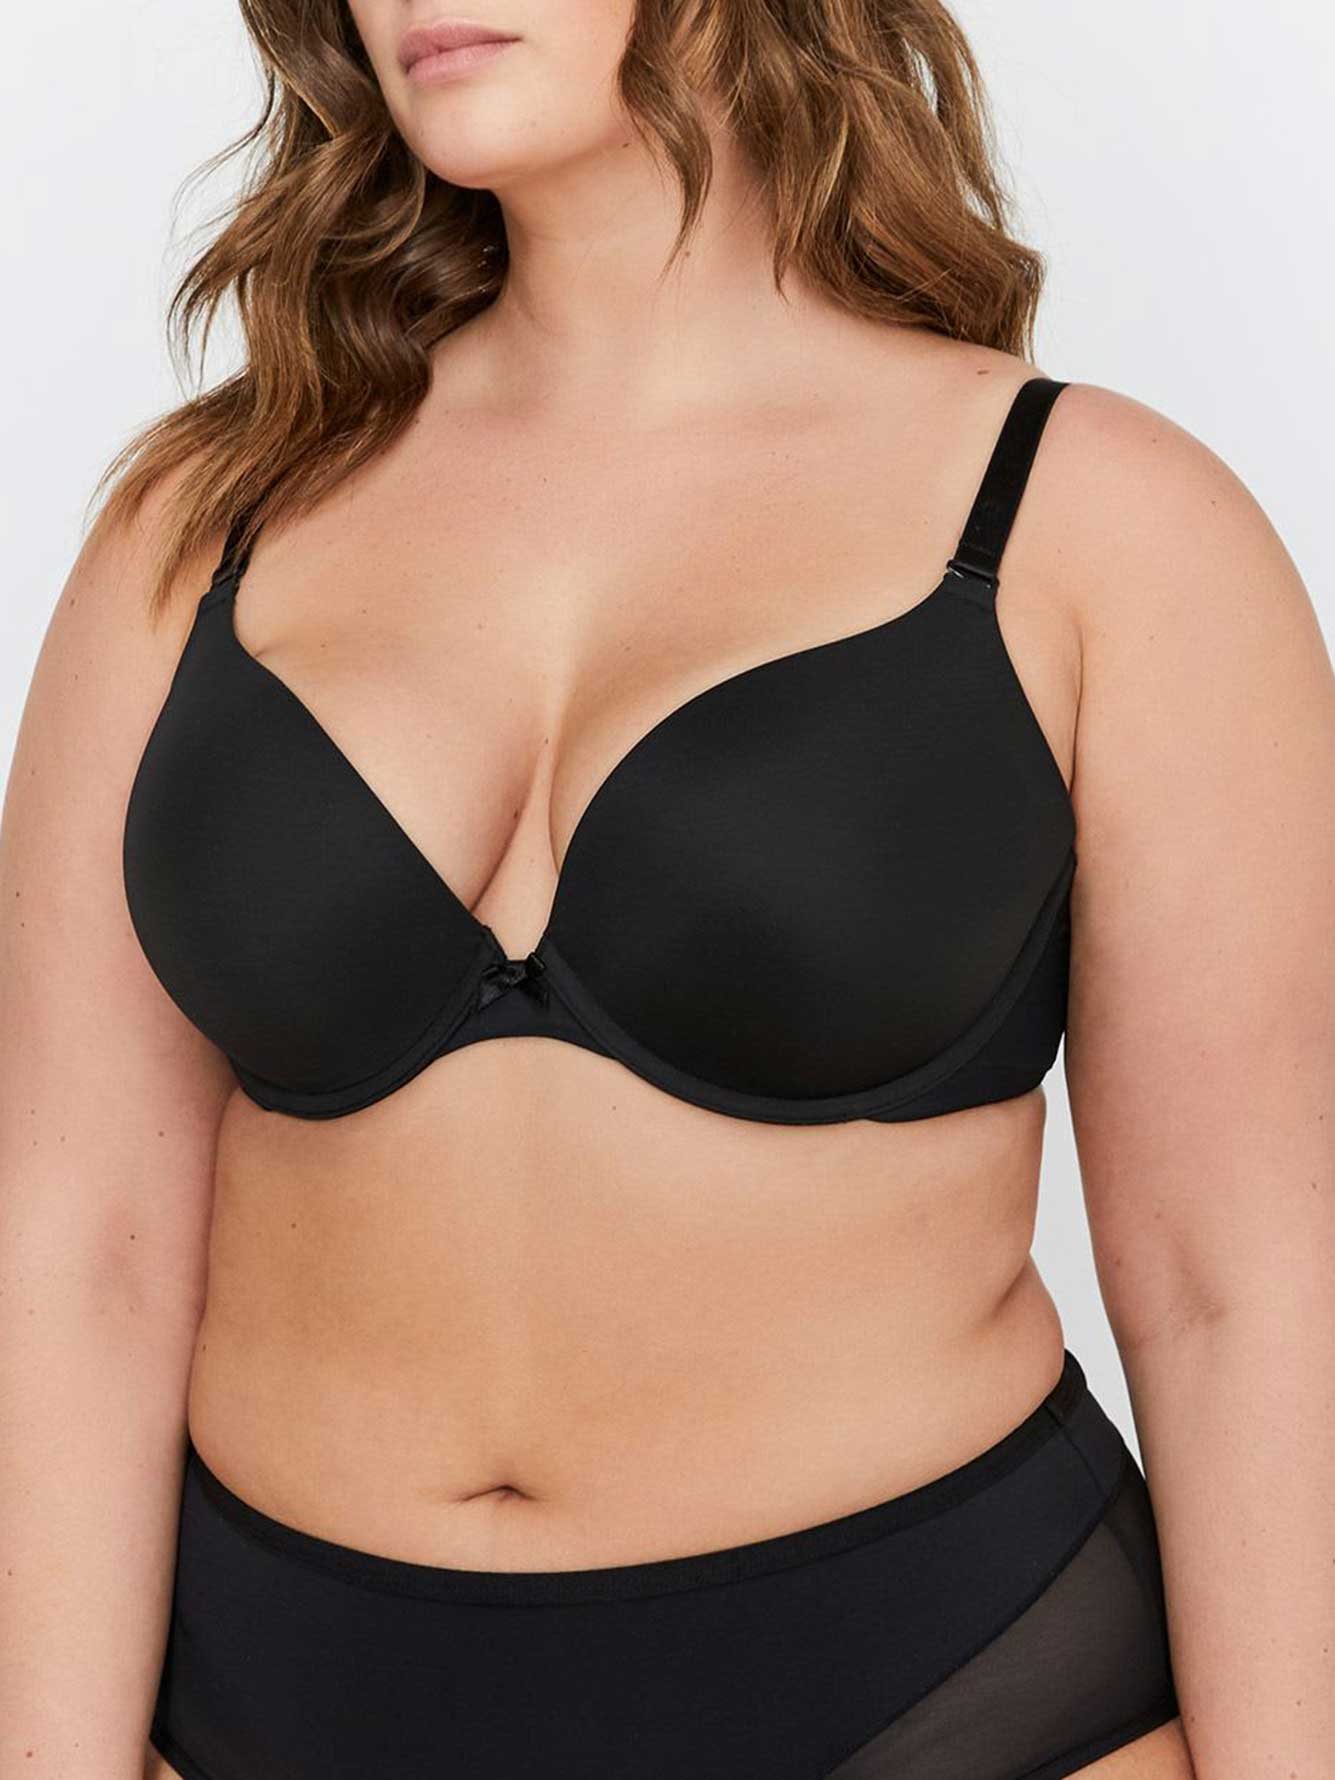 f64b5a5e1d Smooth Plunge Push Up Bra Sizes G   H - Déesse Collection ...